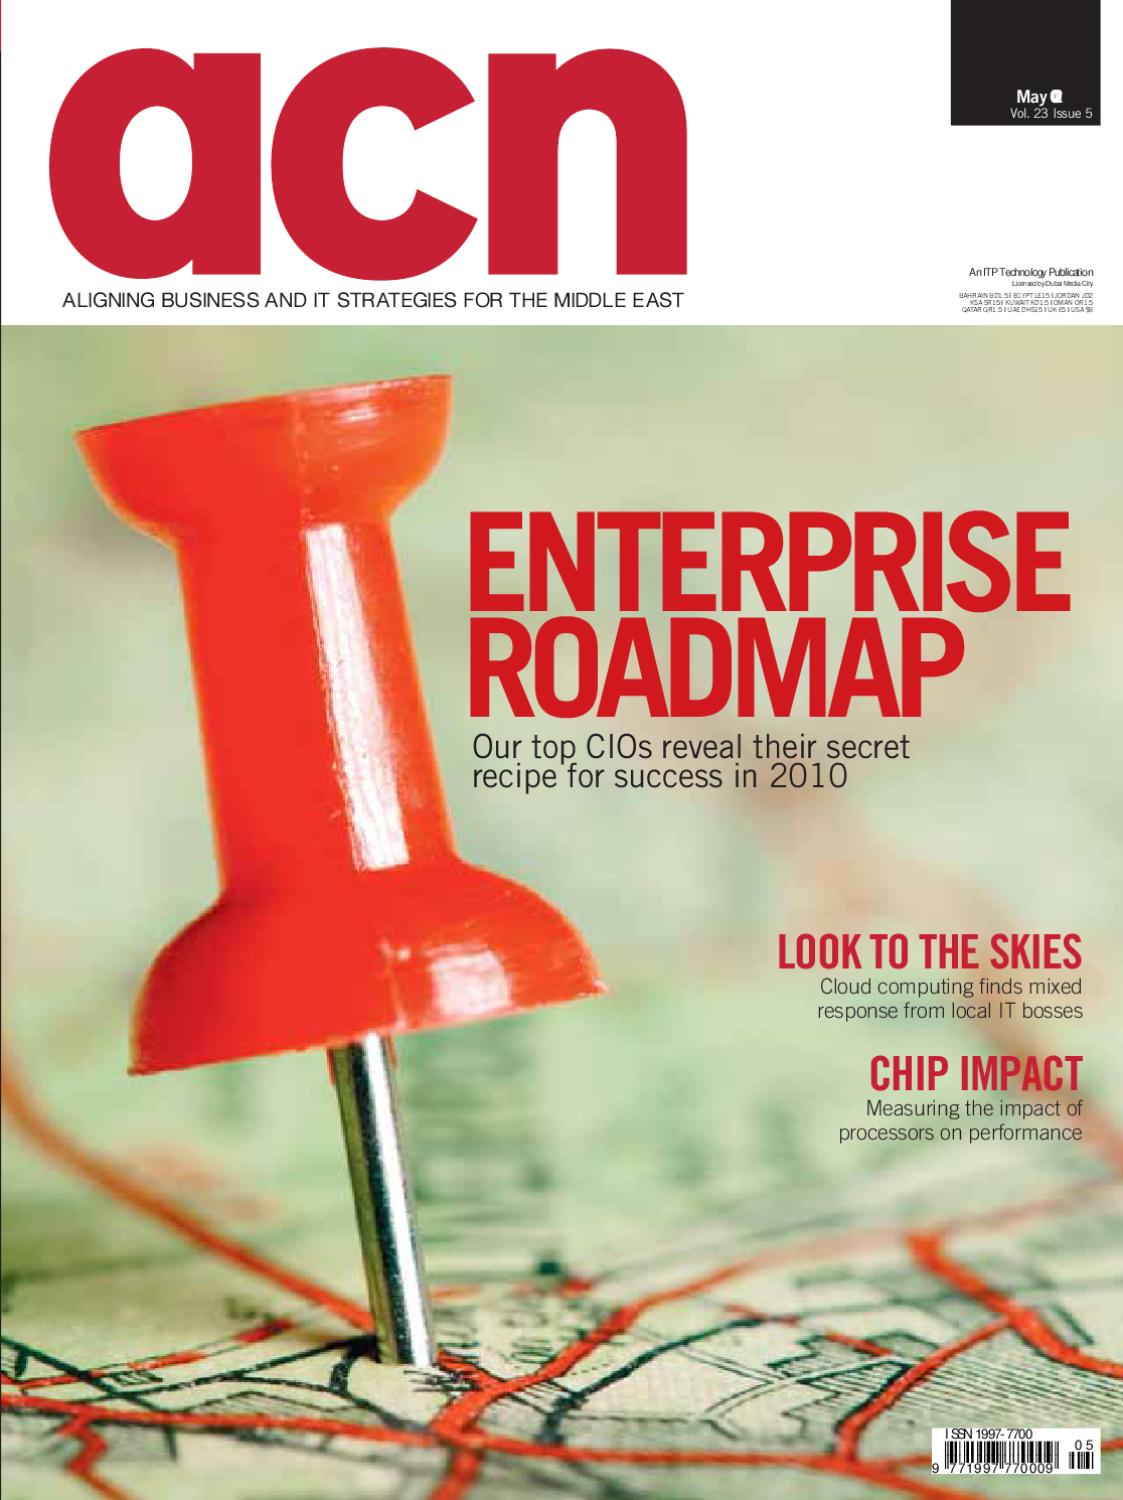 Arabian Computer News - May 2010 by ITP Business Publishing - issuu